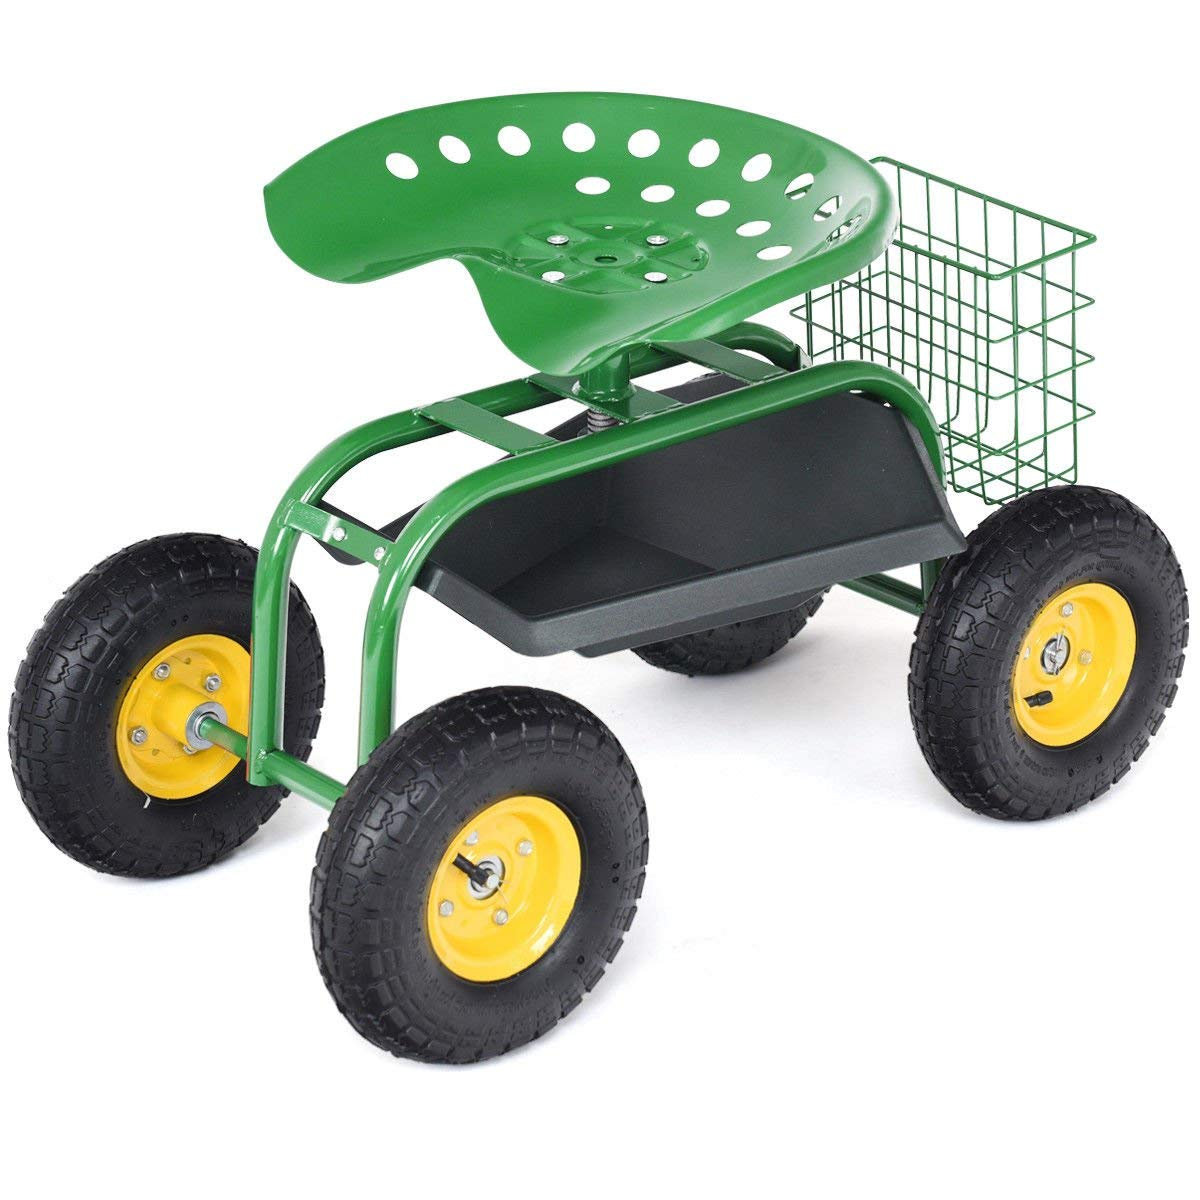 "PNPGlobal Garden Cart Rolling Work Seat with Tool Tray Heavy Duty Gardening Planting Green New, 31.5"" L x 18"" W x 21.5"" H"